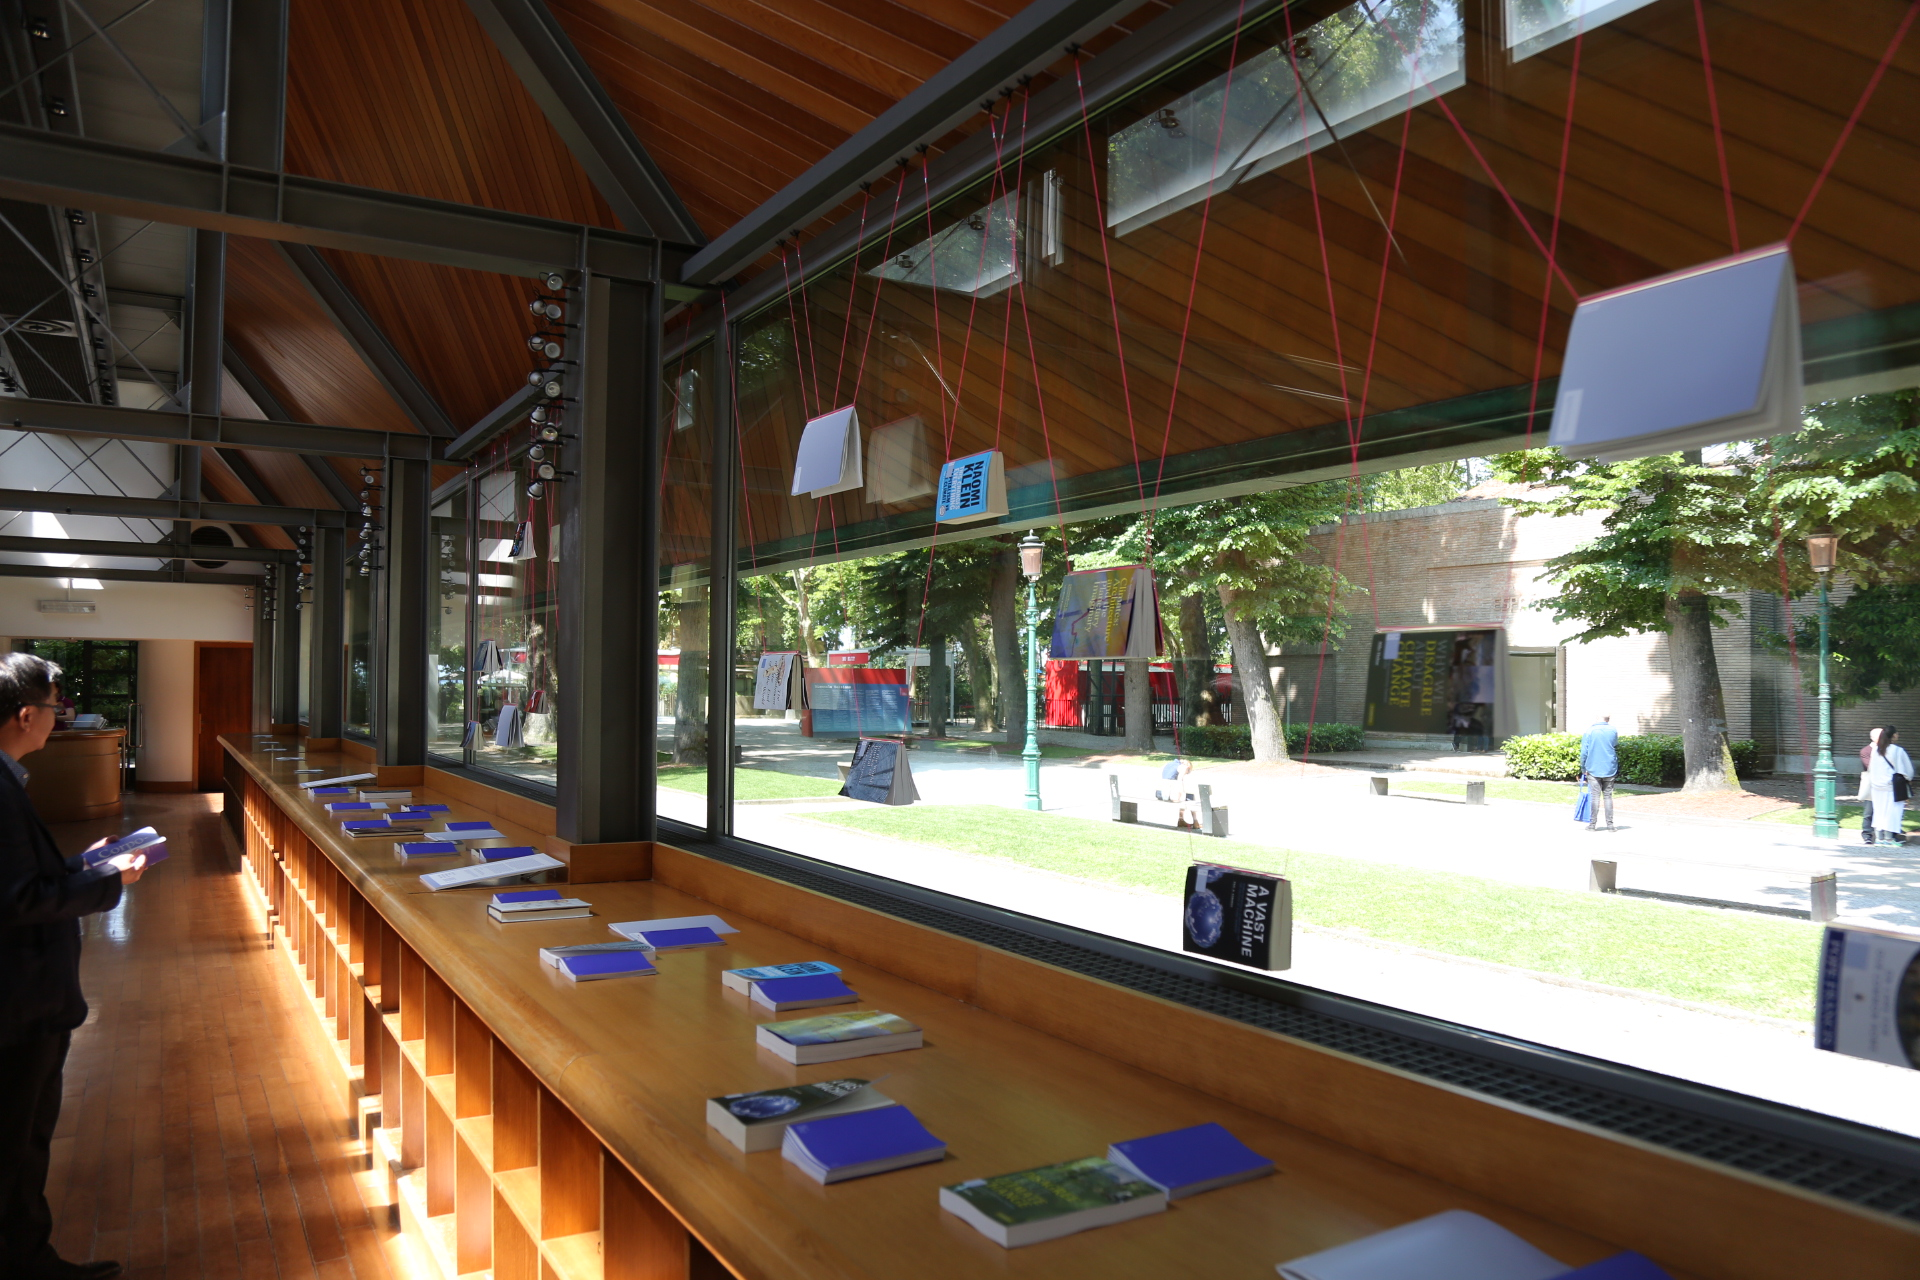 An installation of the Footnotes on Climate at the 2016 Venice Biennale. The digital Footnotes project accompanied the book  Climates: Architecture and the Planetary Imaginary , a print publication Columbia Books on Architecture and the City produced in conjunction with Lars Müller Publishers.   Courtesy James Graham.